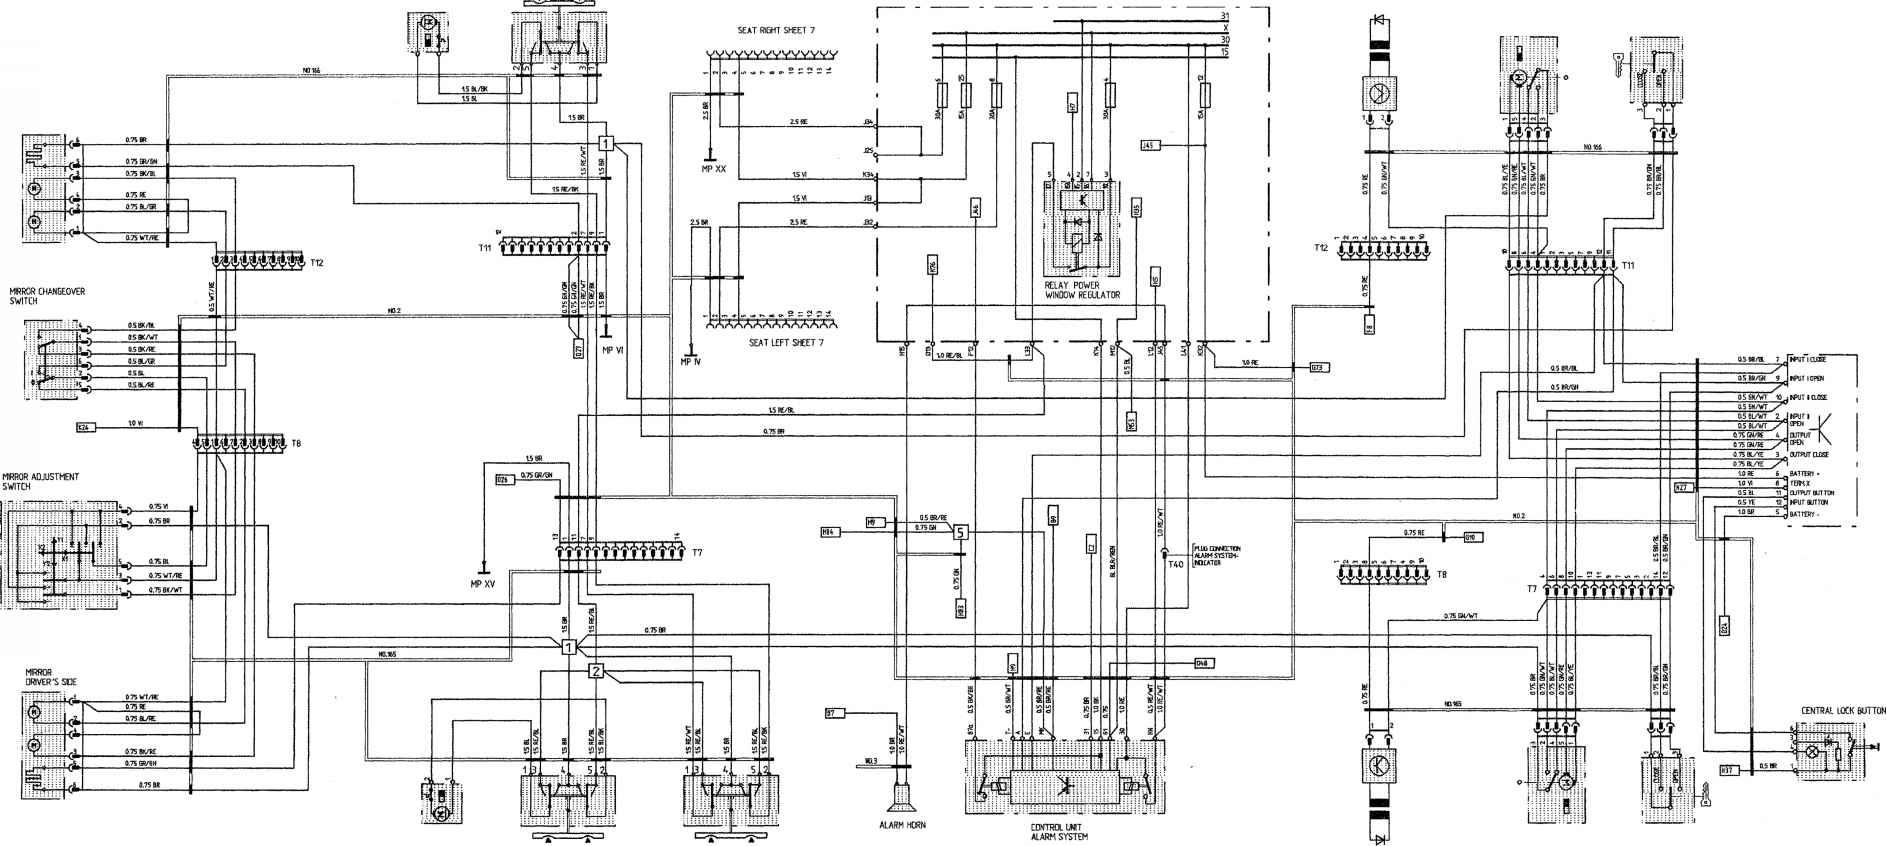 2007 Dodge Grand Caravan Wiring Diagram likewise Larrera 4 Model 89 Sheet 2 furthermore Basic Home Wiring Diagrams Pdf also 2005 Freightliner Columbia Fuse Box Diagram Freightliner Columbia Regarding 2007 Freightliner Electrical Wiring Diagrams further 8w12s0. on hvac electrical wiring diagrams